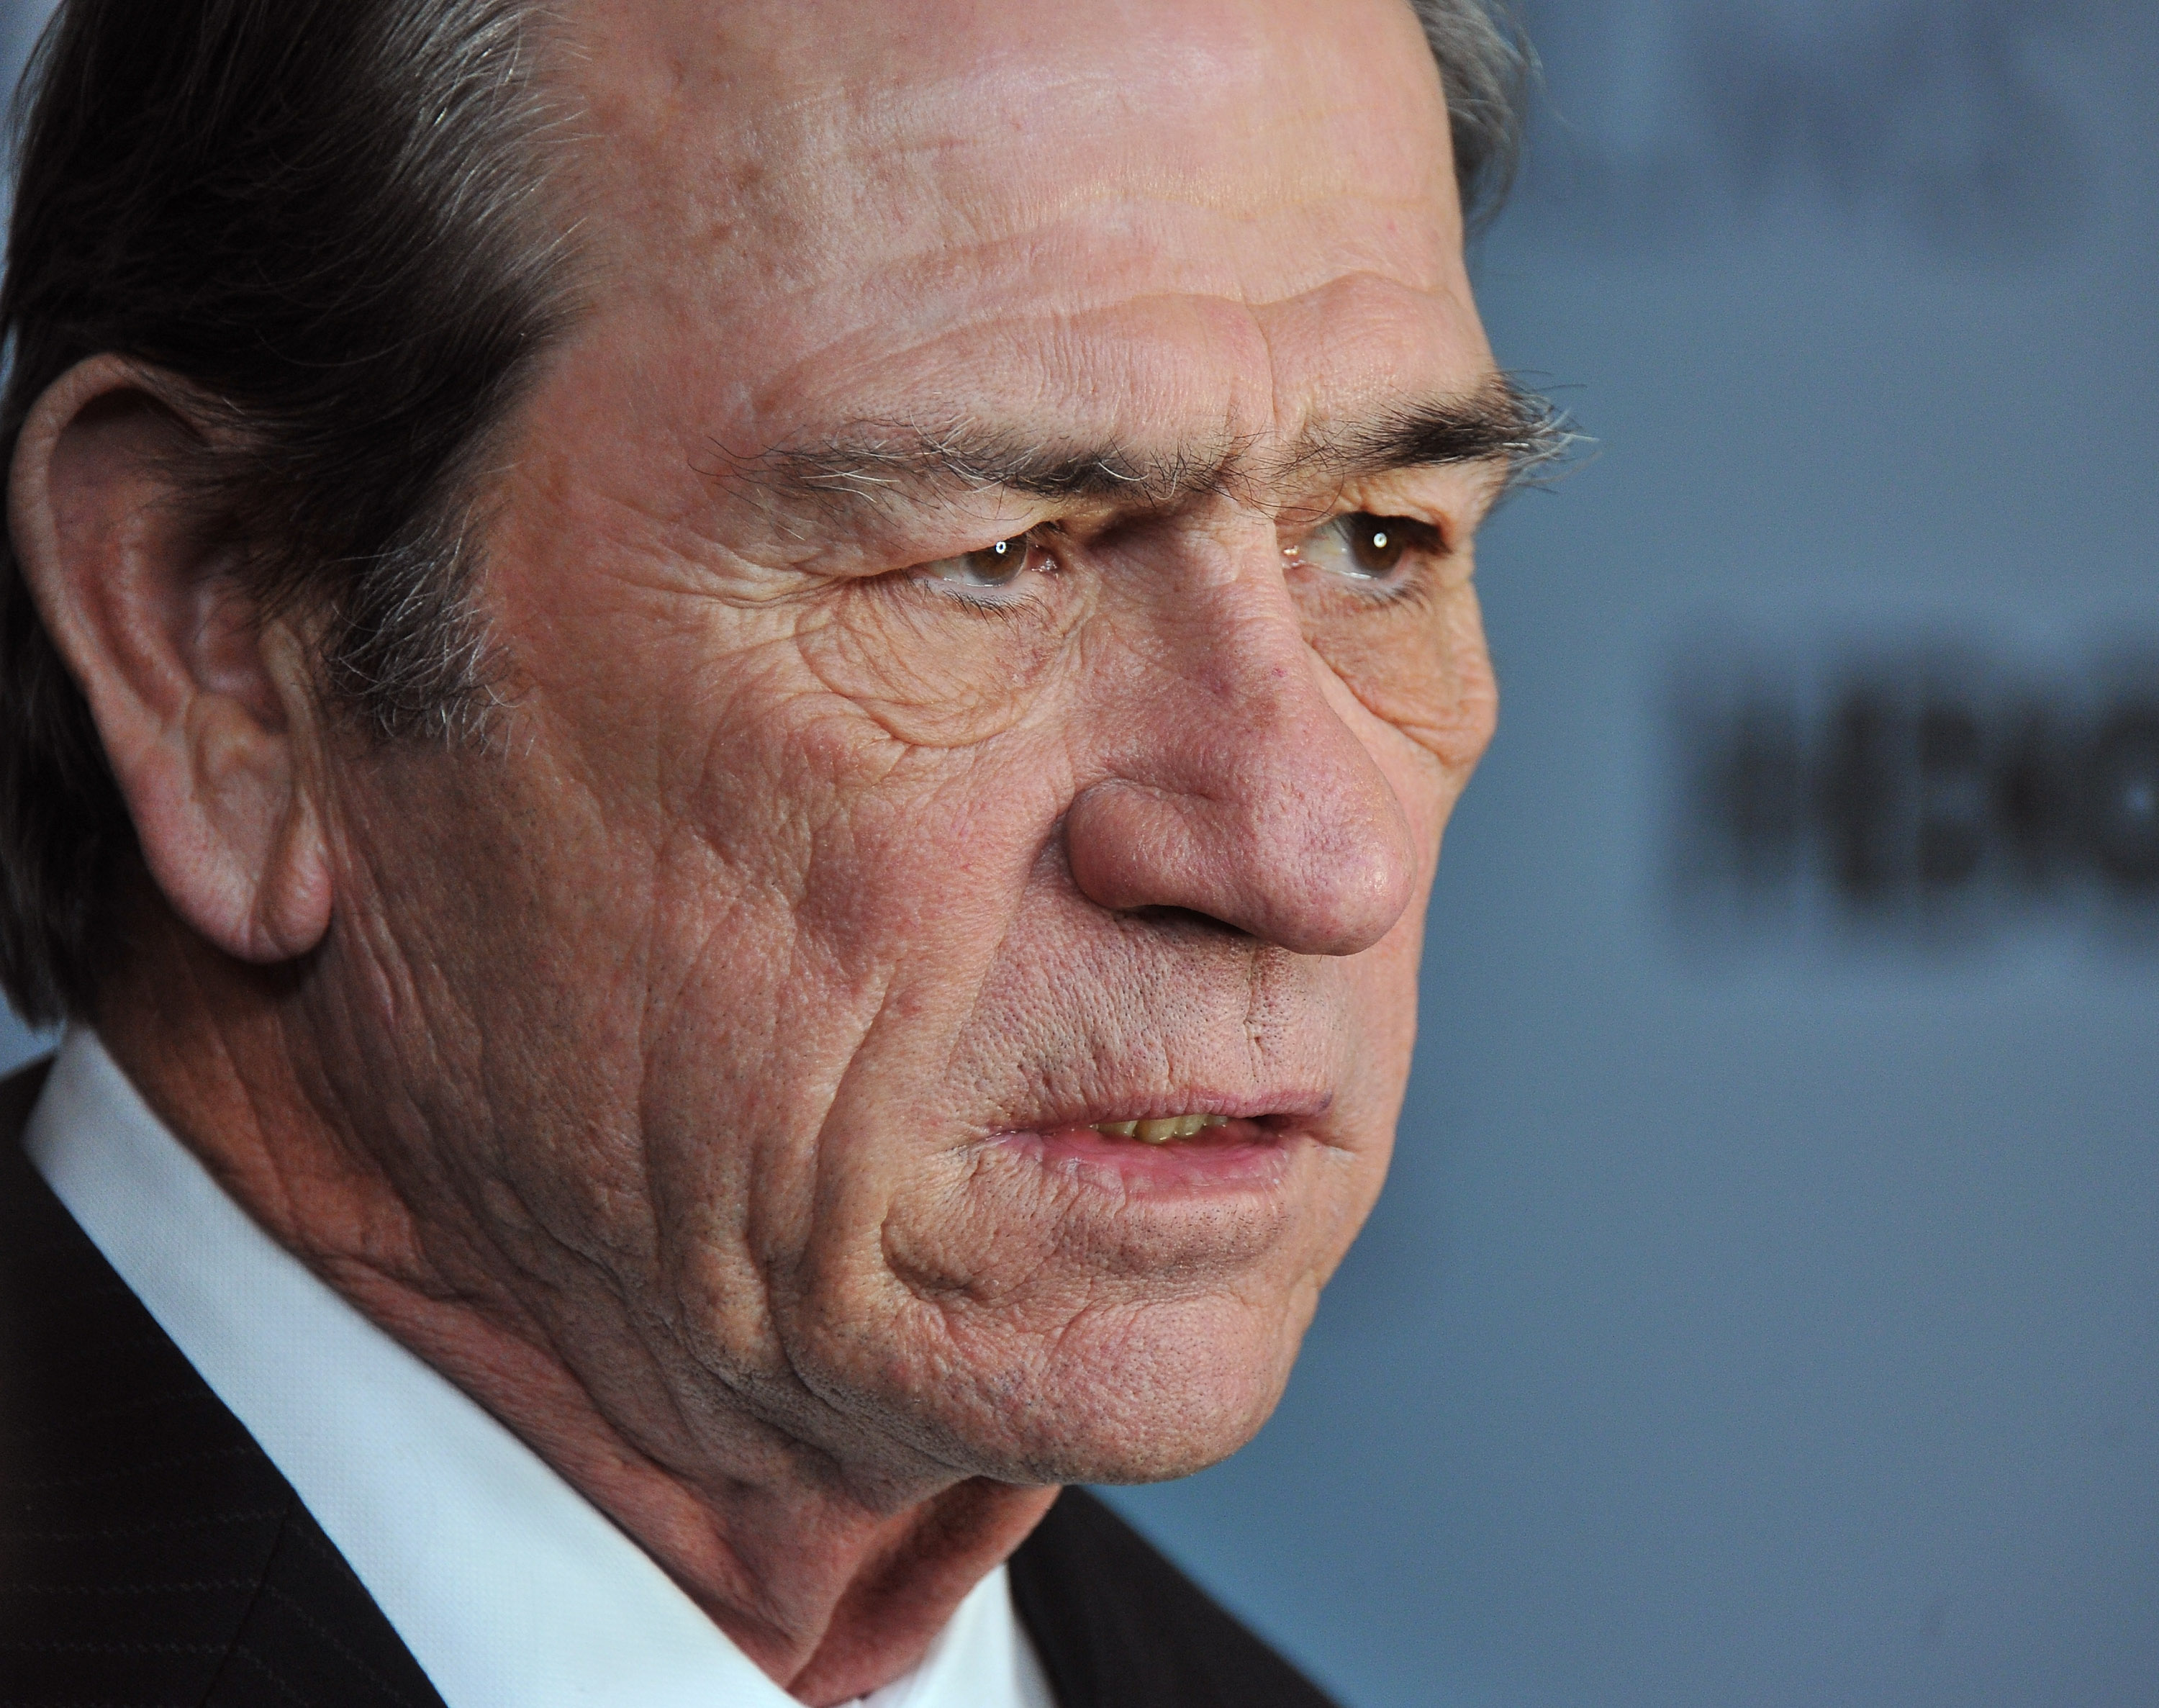 Pictures of Tommy Lee Jones, Picture #276508 - Pictures Of Celebrities